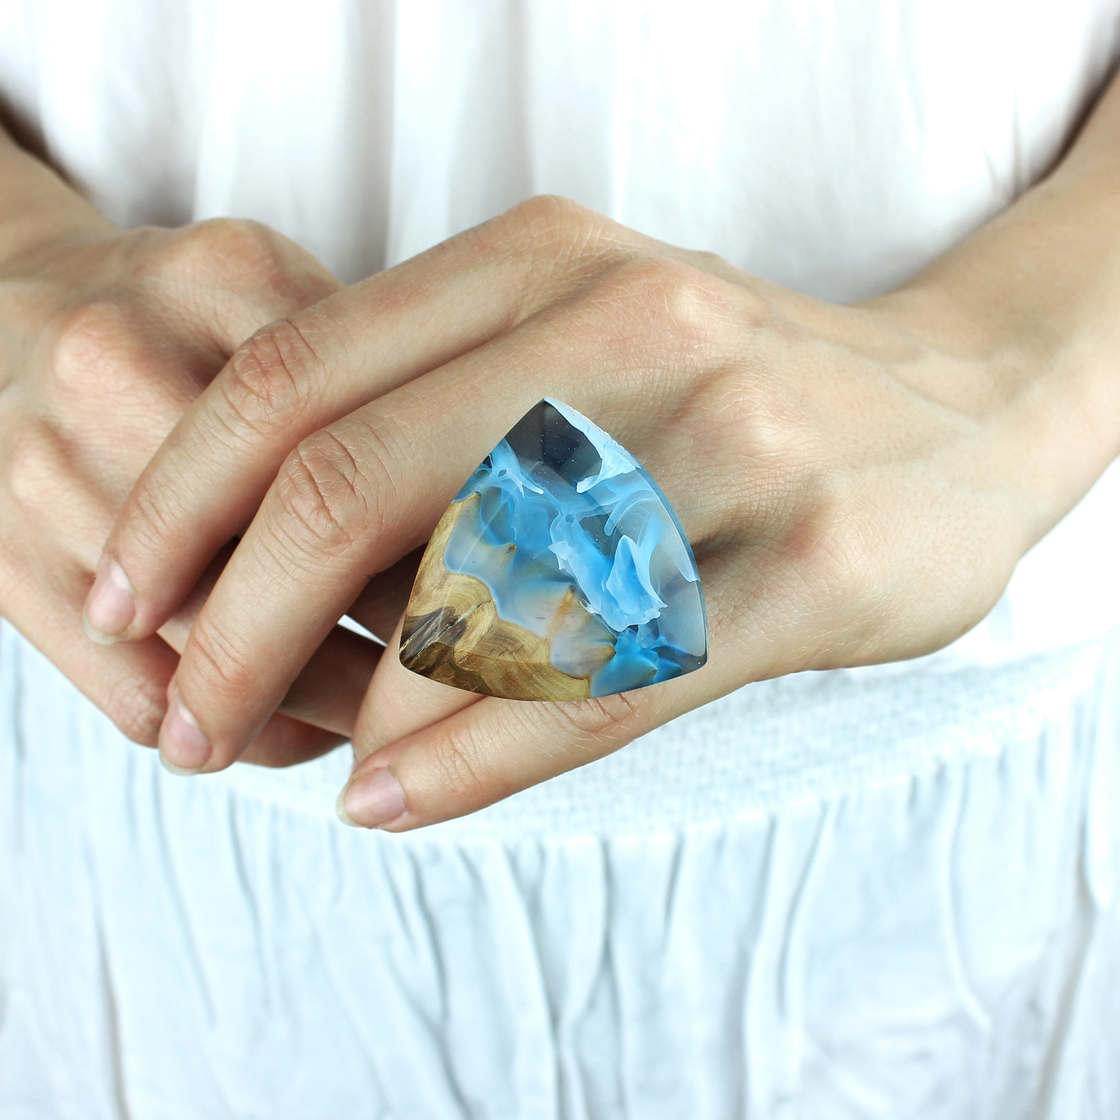 Wood and resin – The fascinating and poetic jewelry by Miha Debeljak